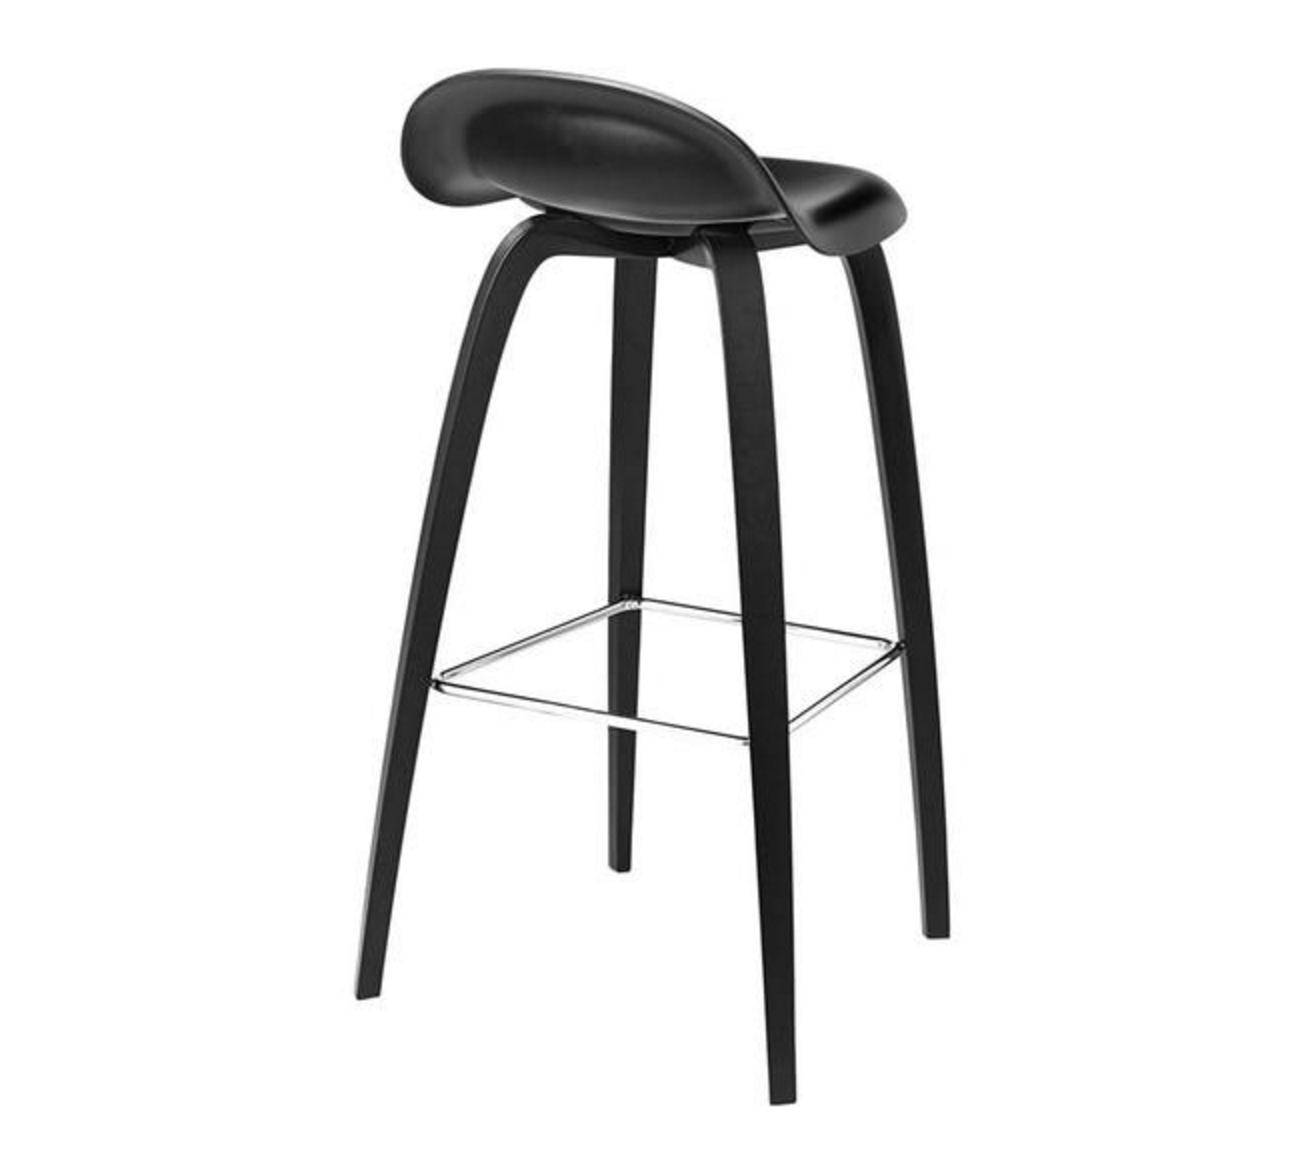 3D Bar Stool - Un-upholstered - 75 cm Black Stained Beech base, Black Stained Beech shell fra GUBI